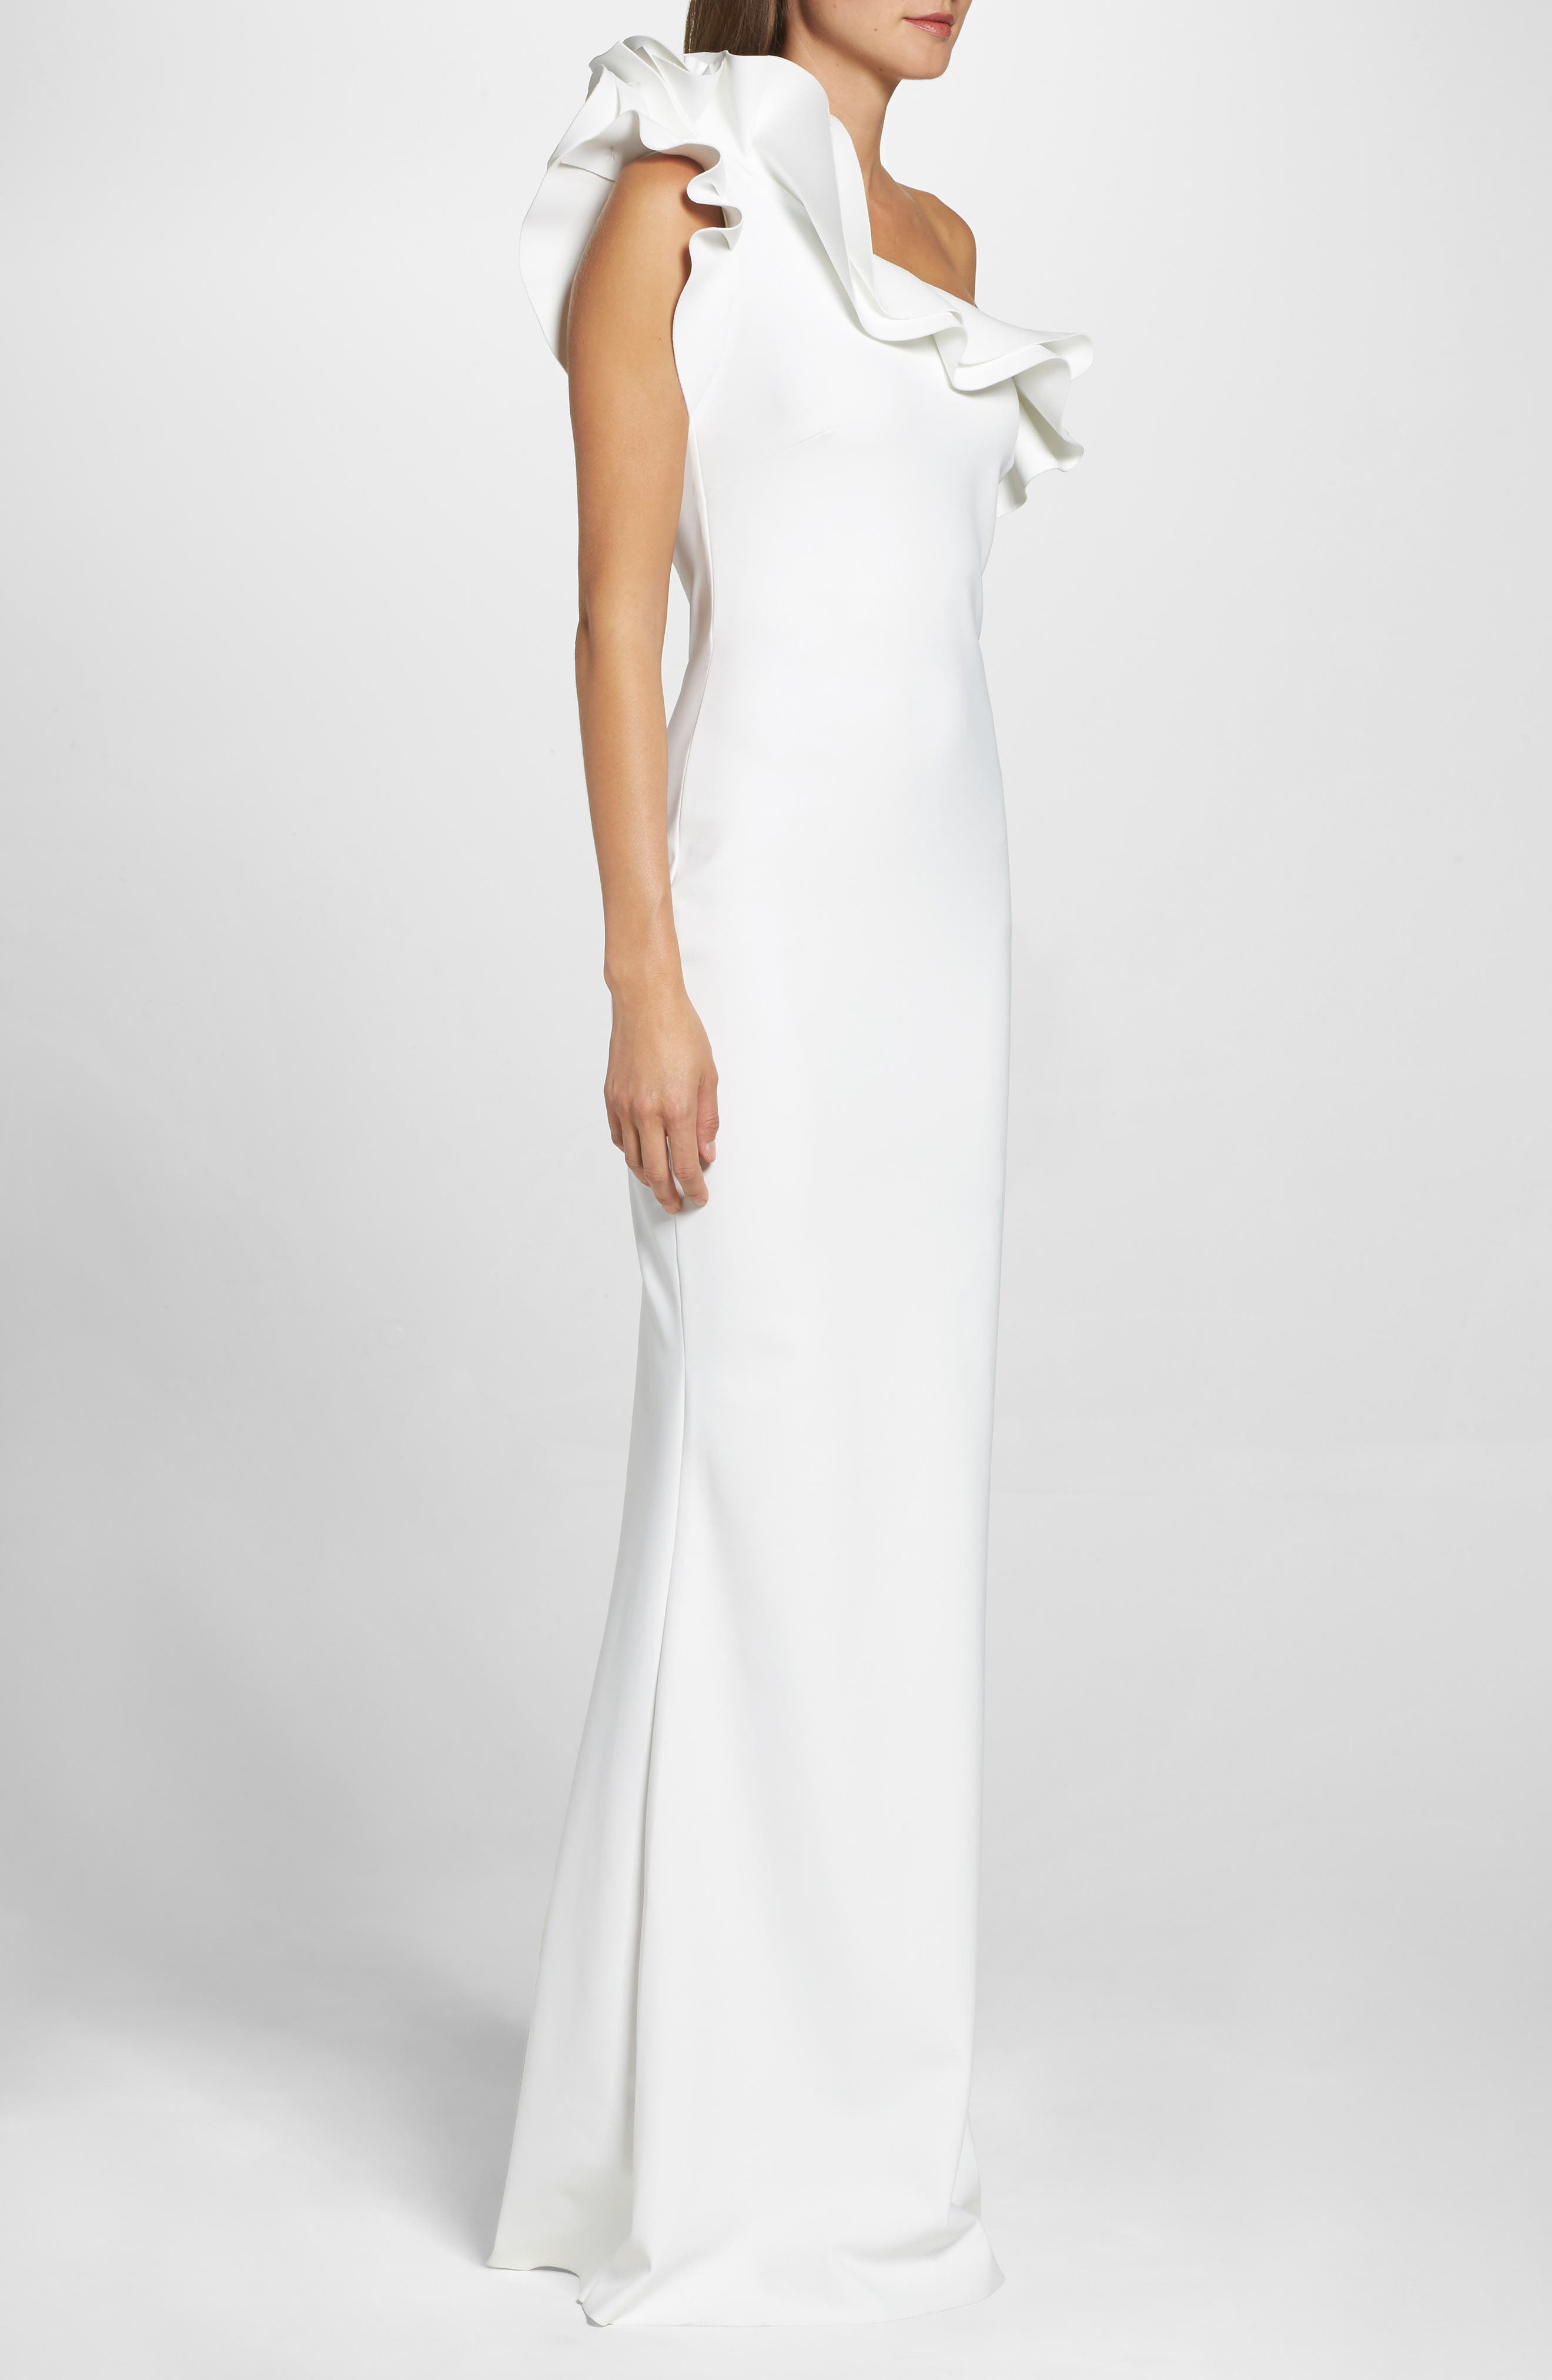 Elisir Ruffle One-Shoulder Gown,                             Alternate thumbnail 3, color,                             White